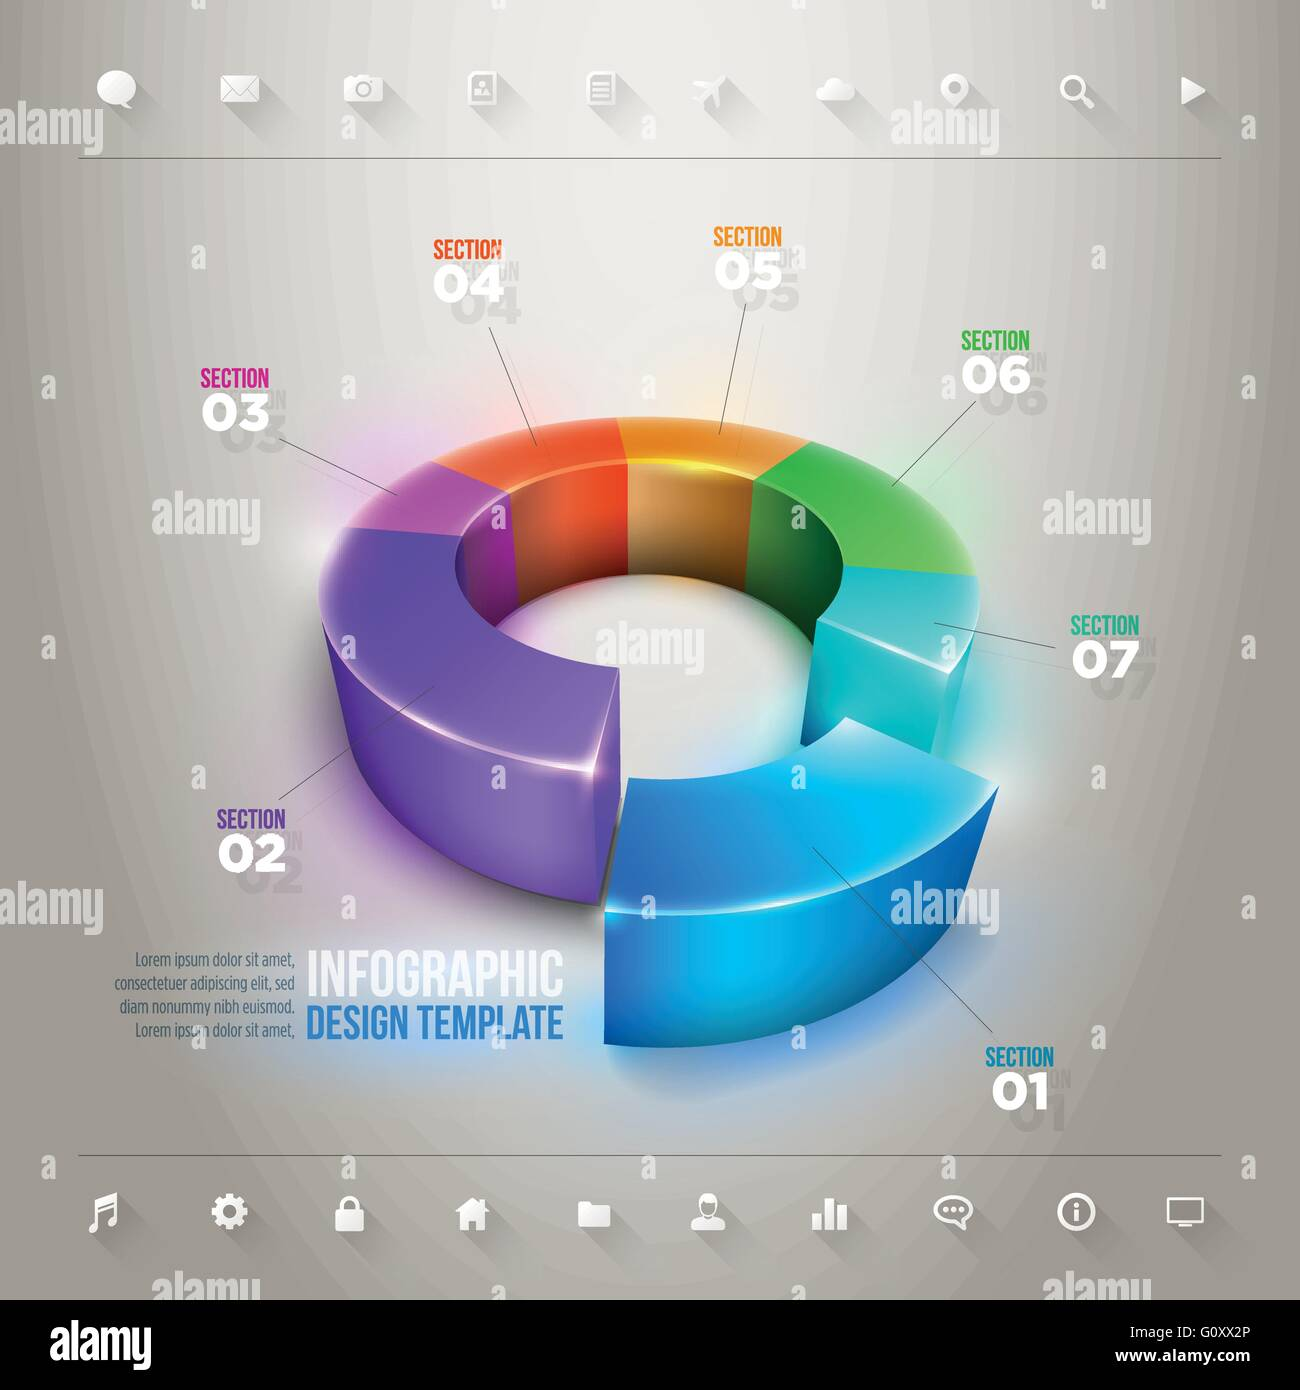 vector 3d pie chart infographic design template. elements are